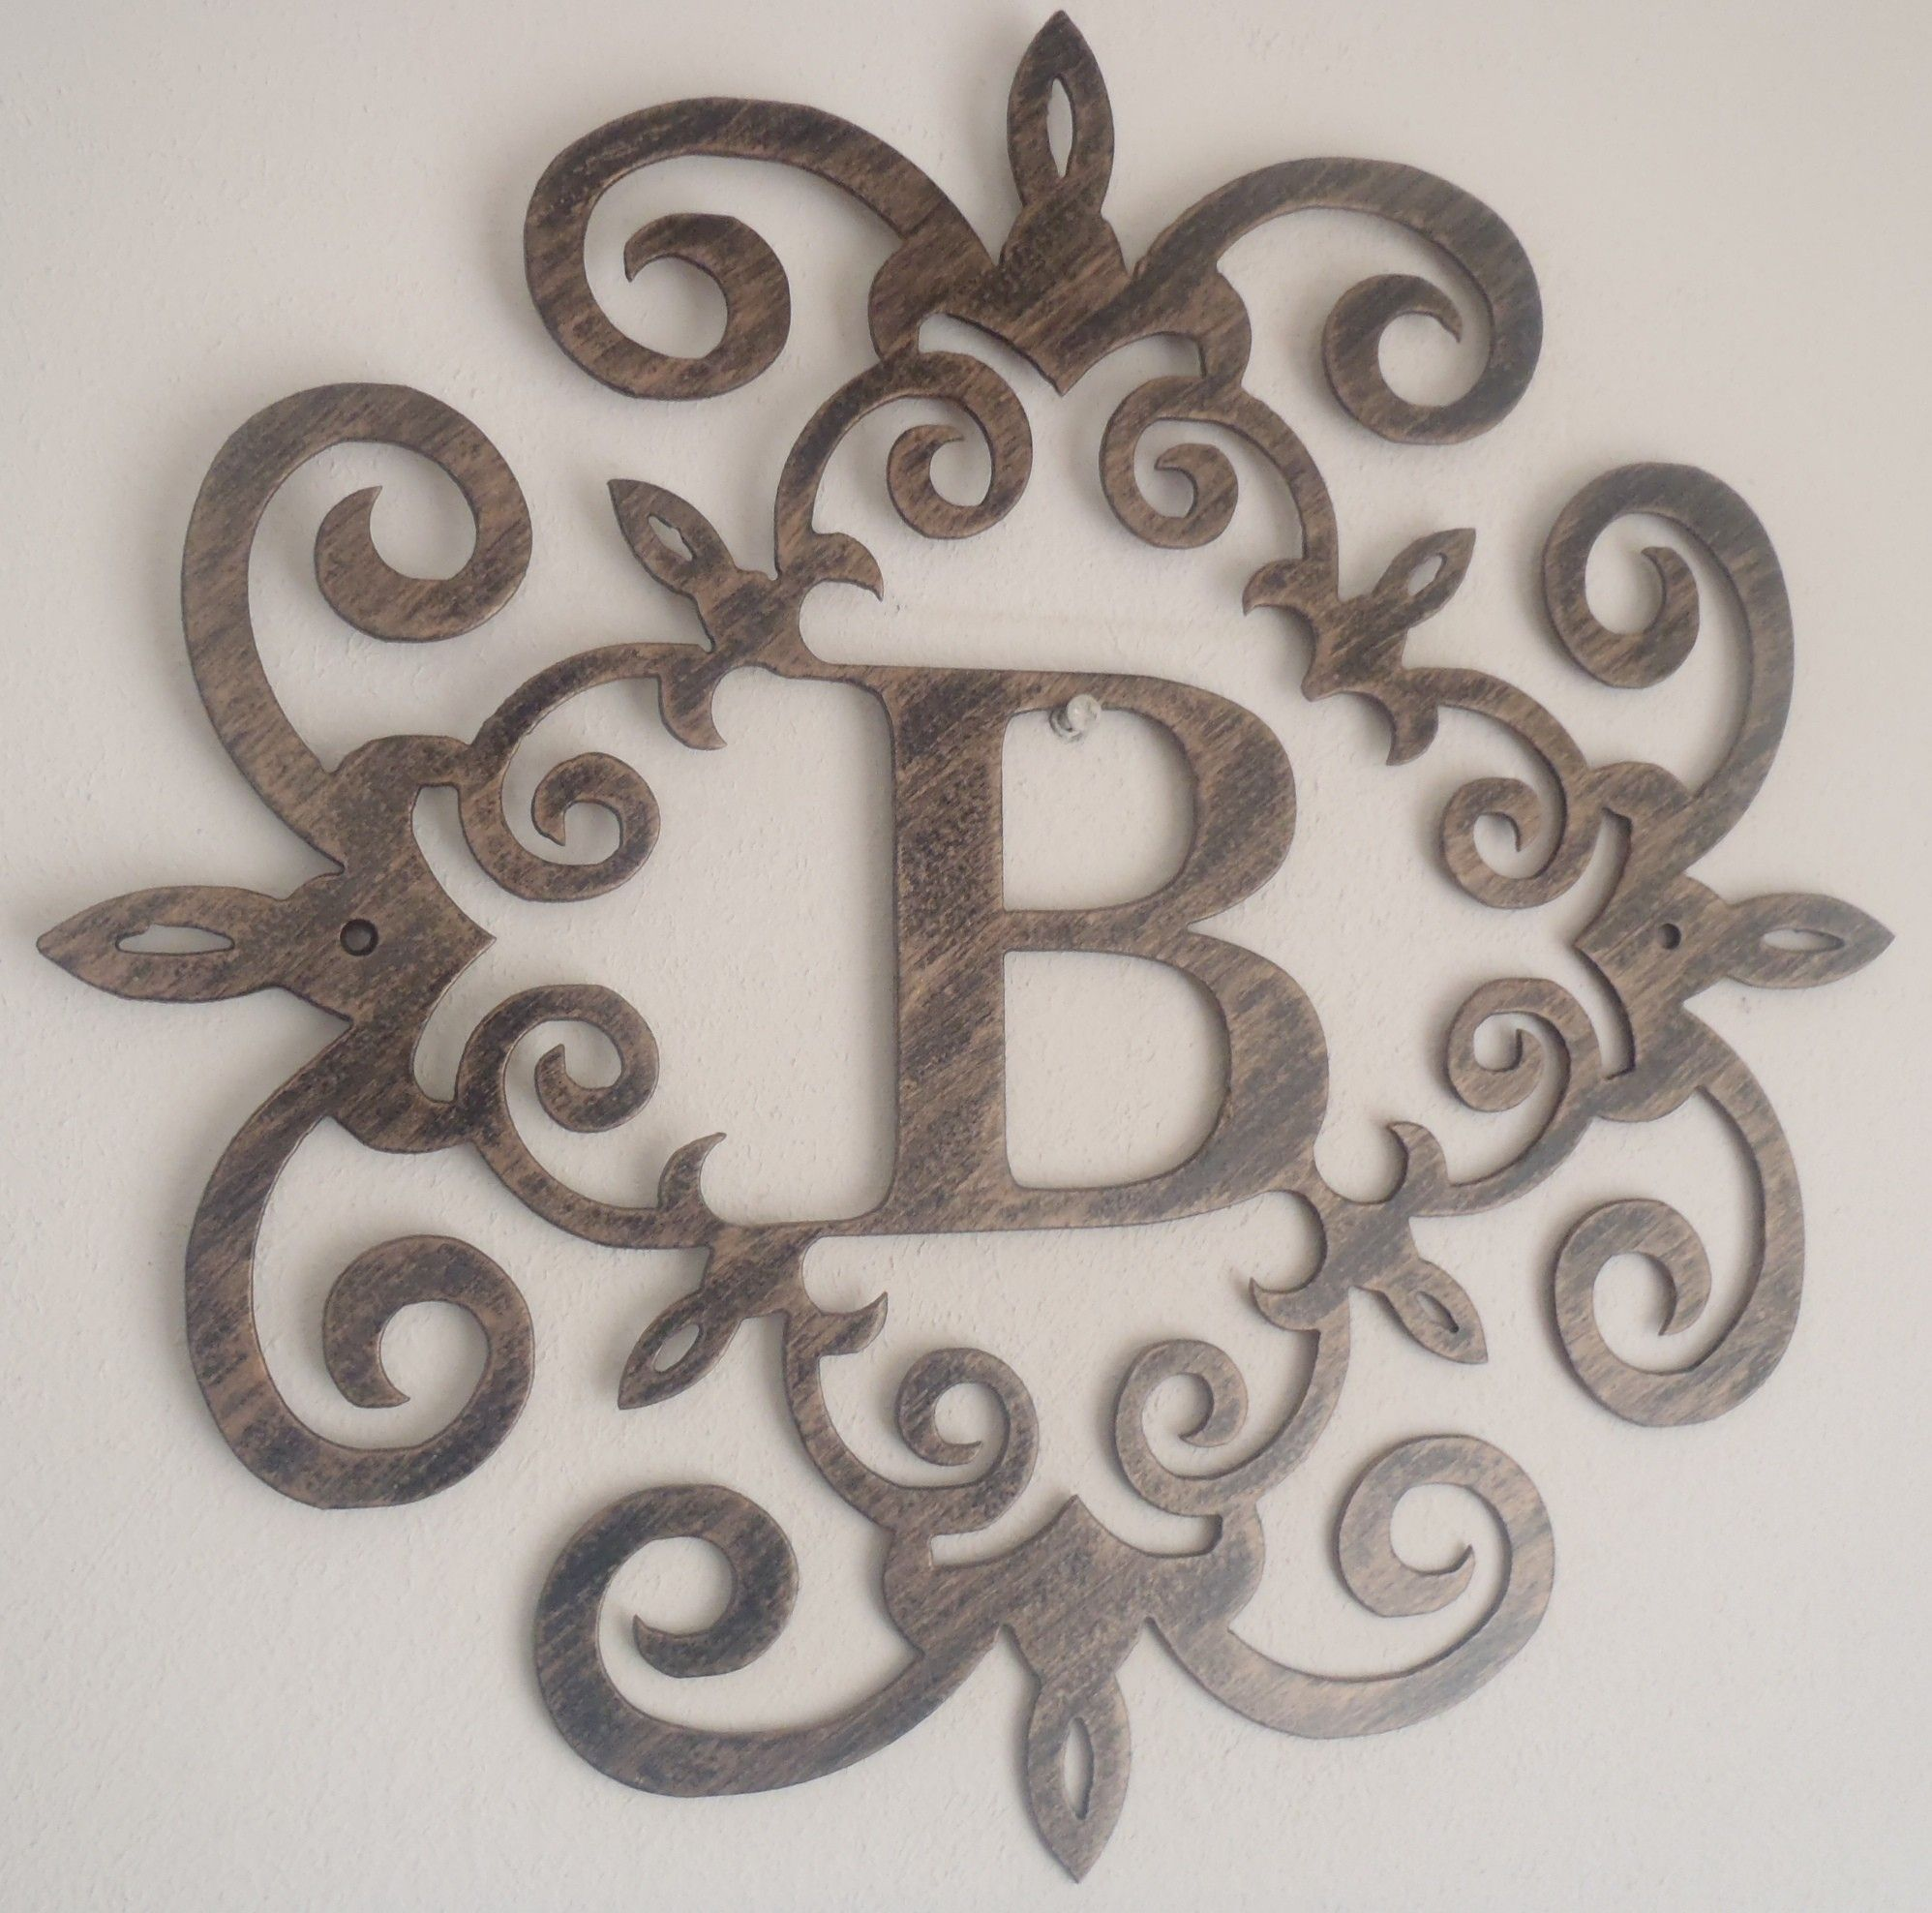 Family Initial Monogram Inside A Metal Scroll With B Letter